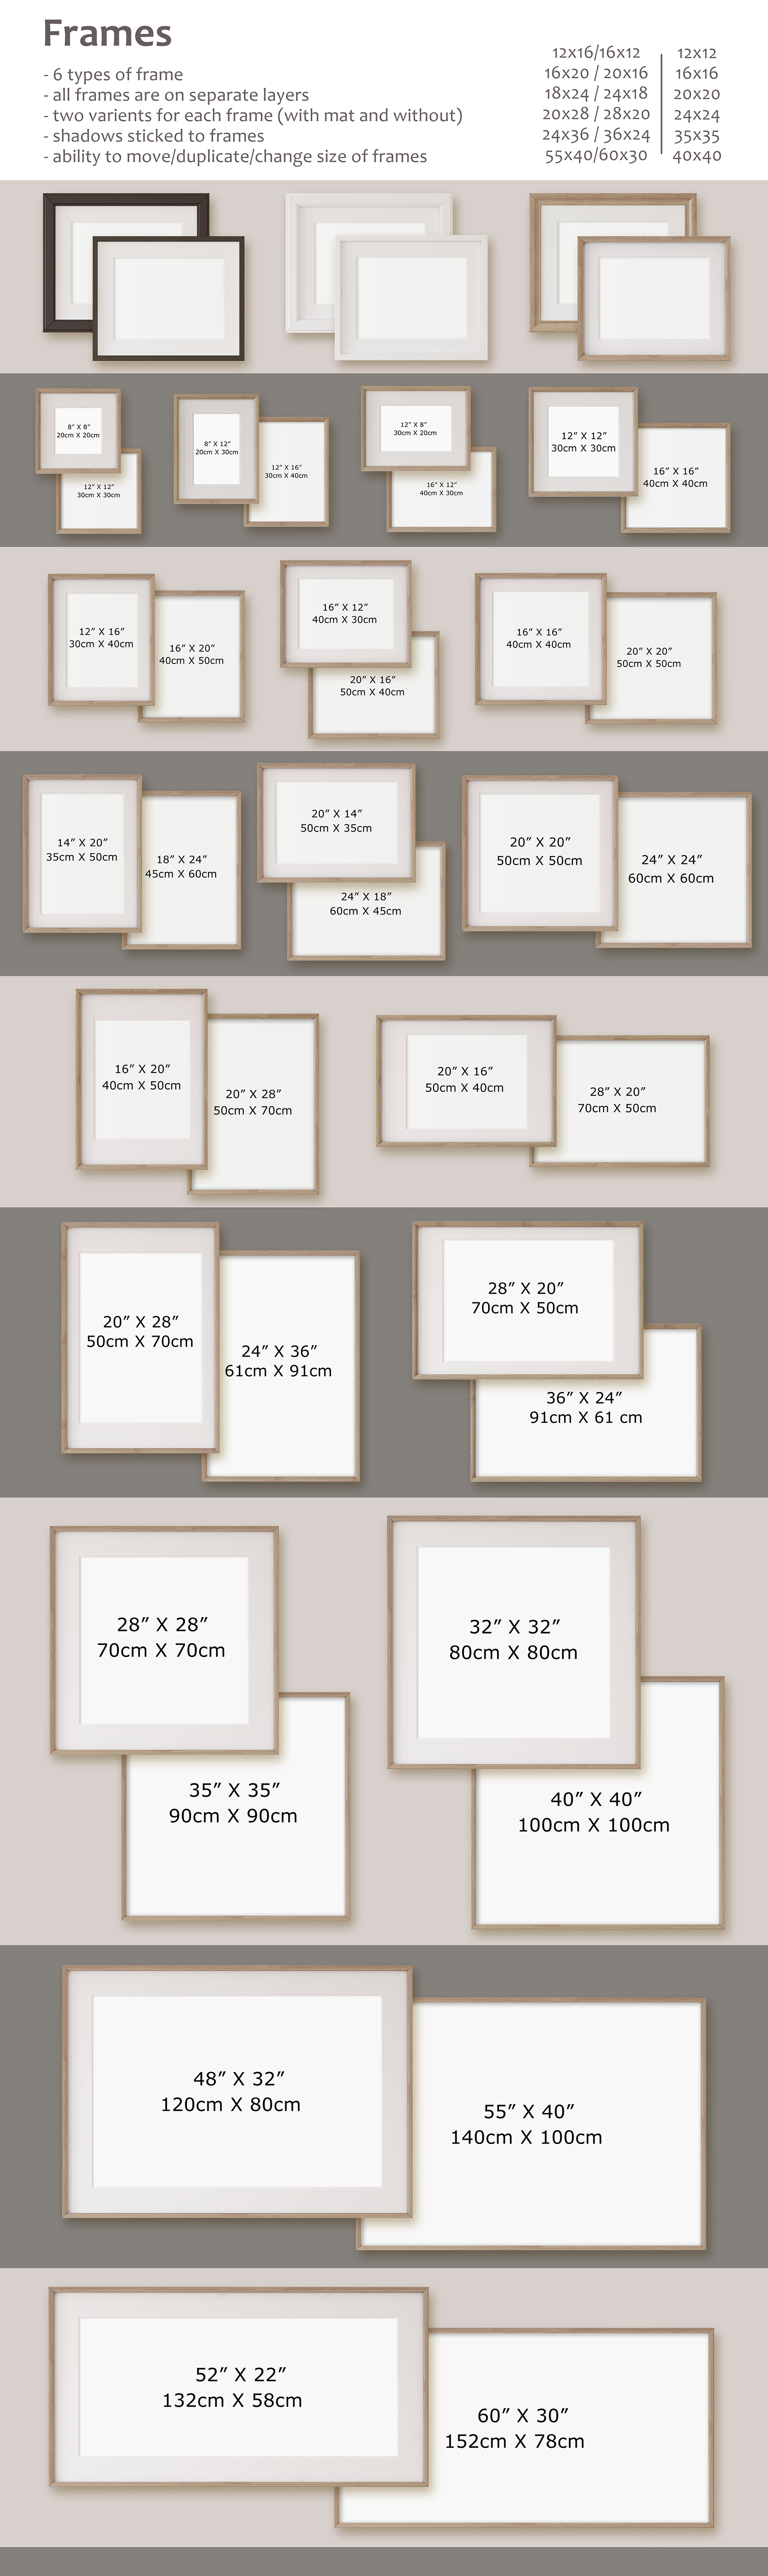 Home office. Frames&Canvases Mockup. example image 5